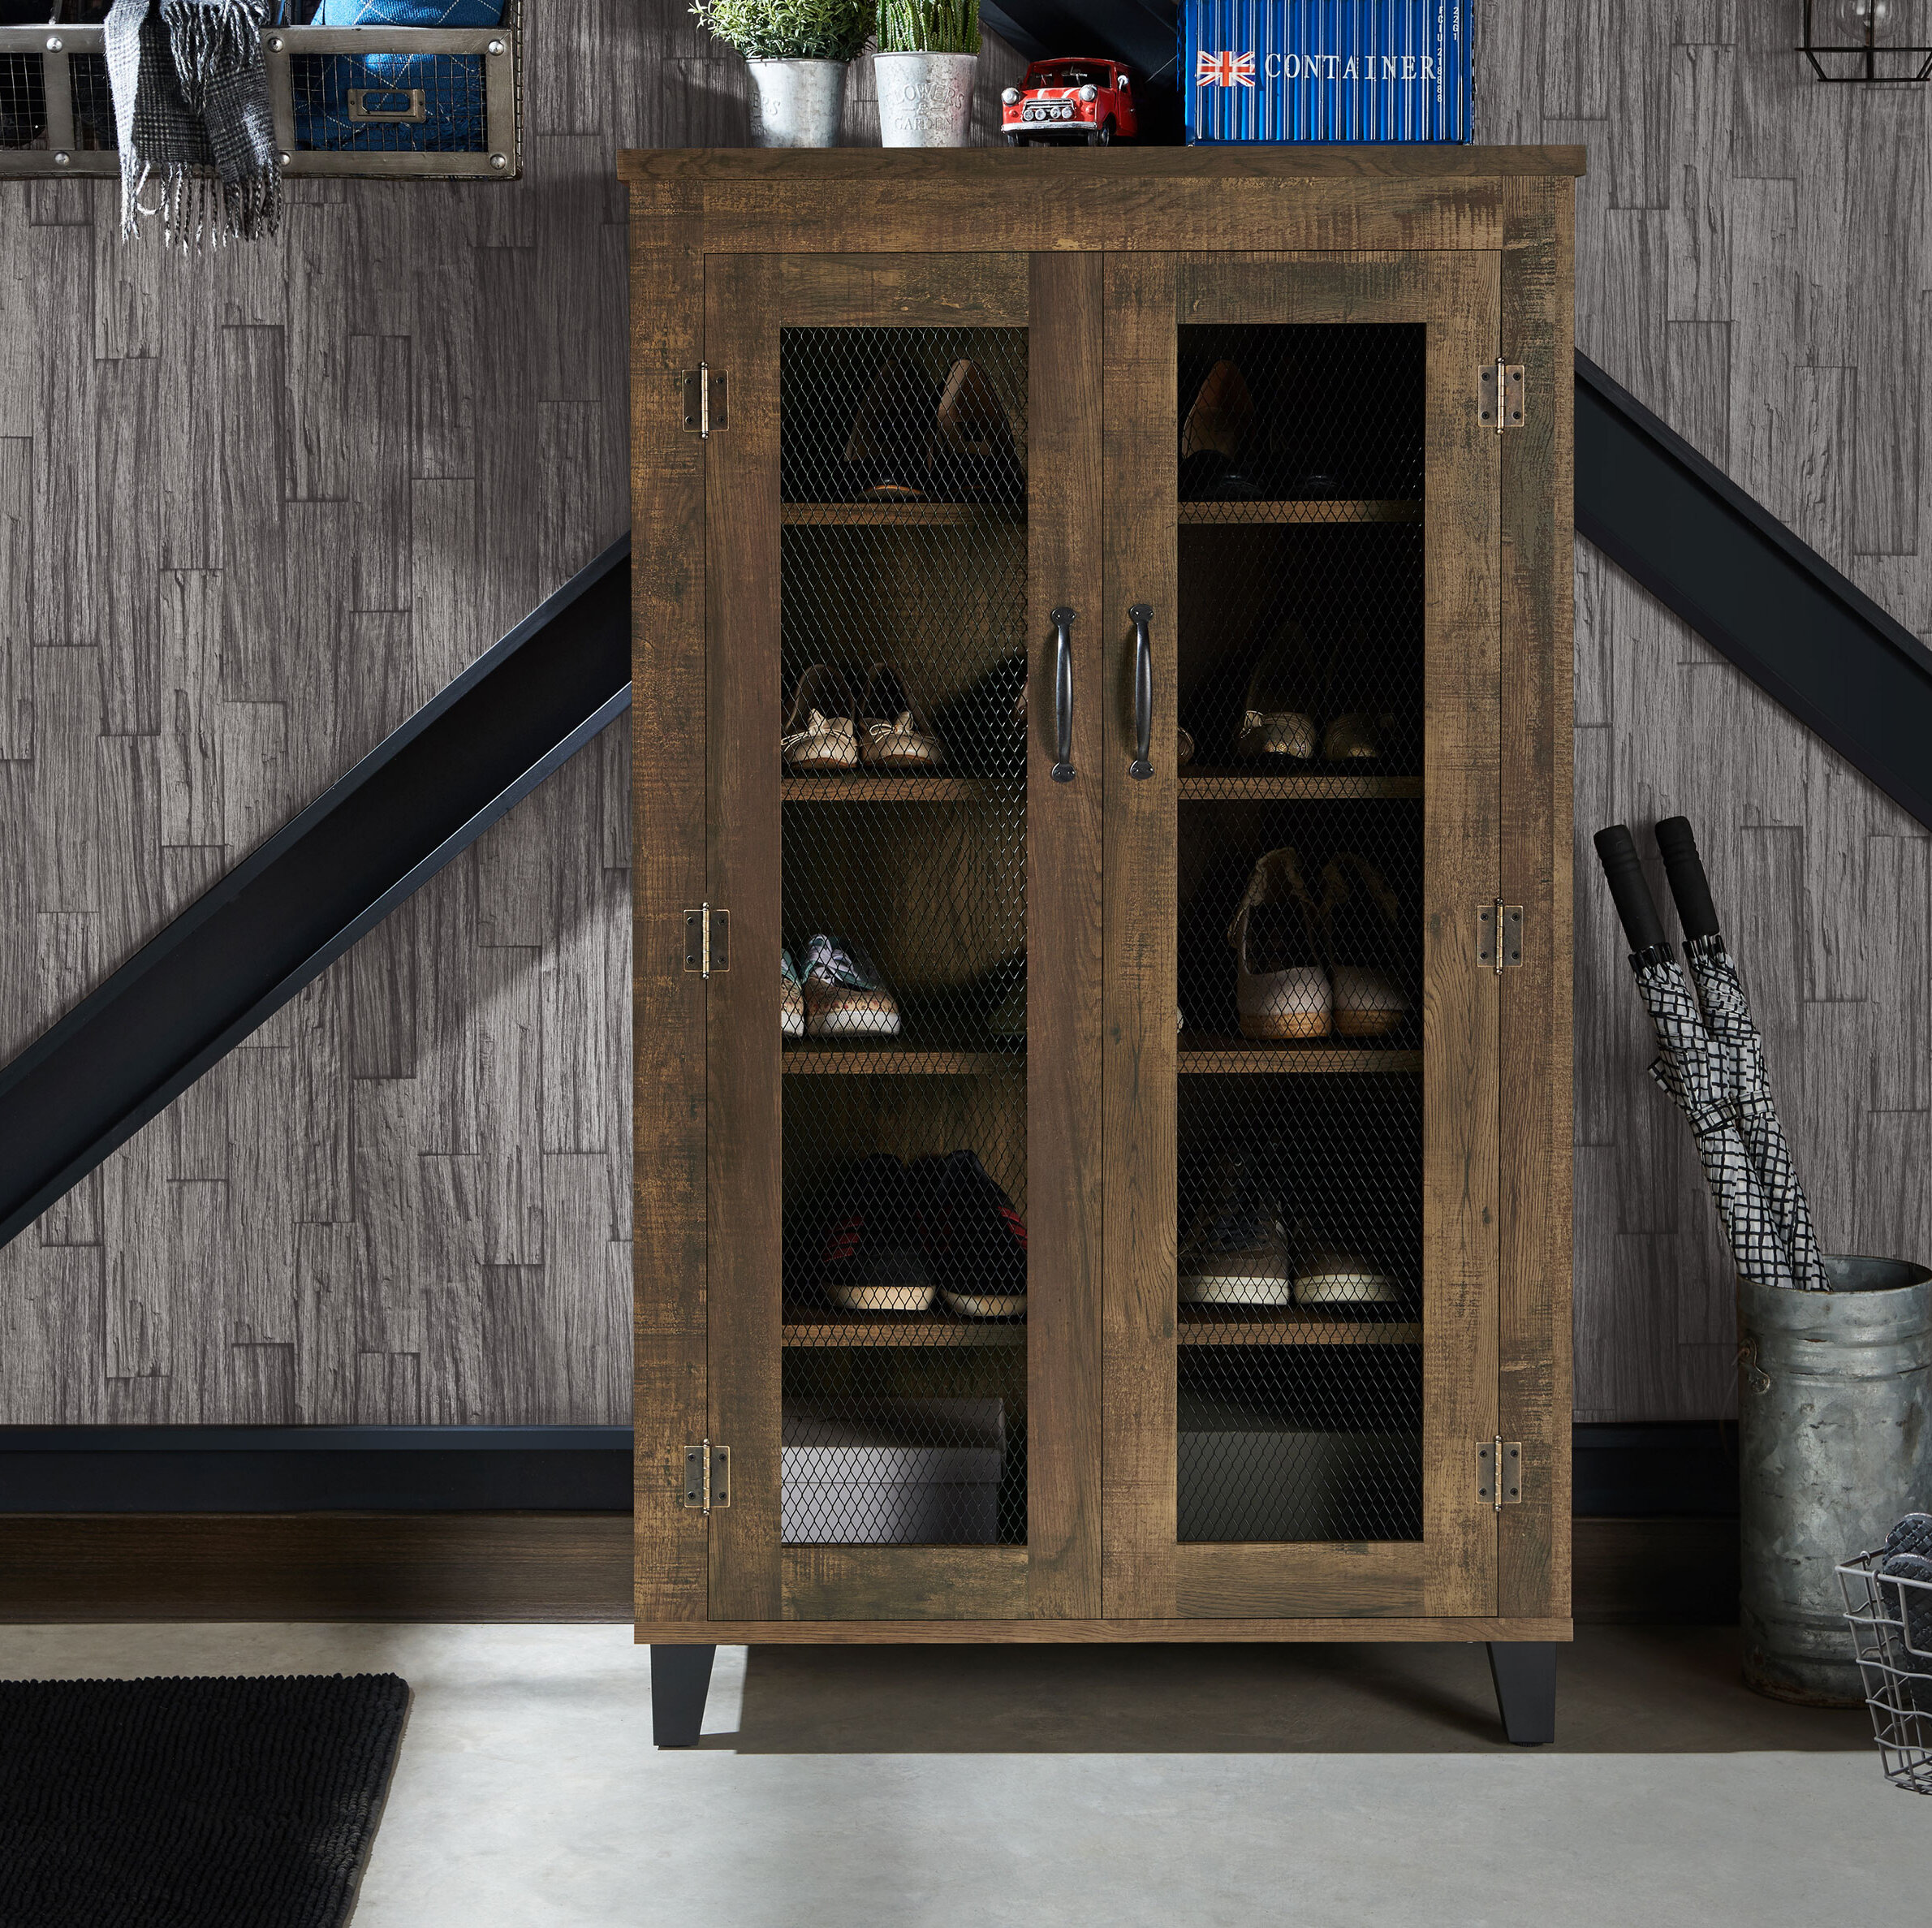 Cabinet Union Rustic Shoe Storage You Ll Love In 2021 Wayfair